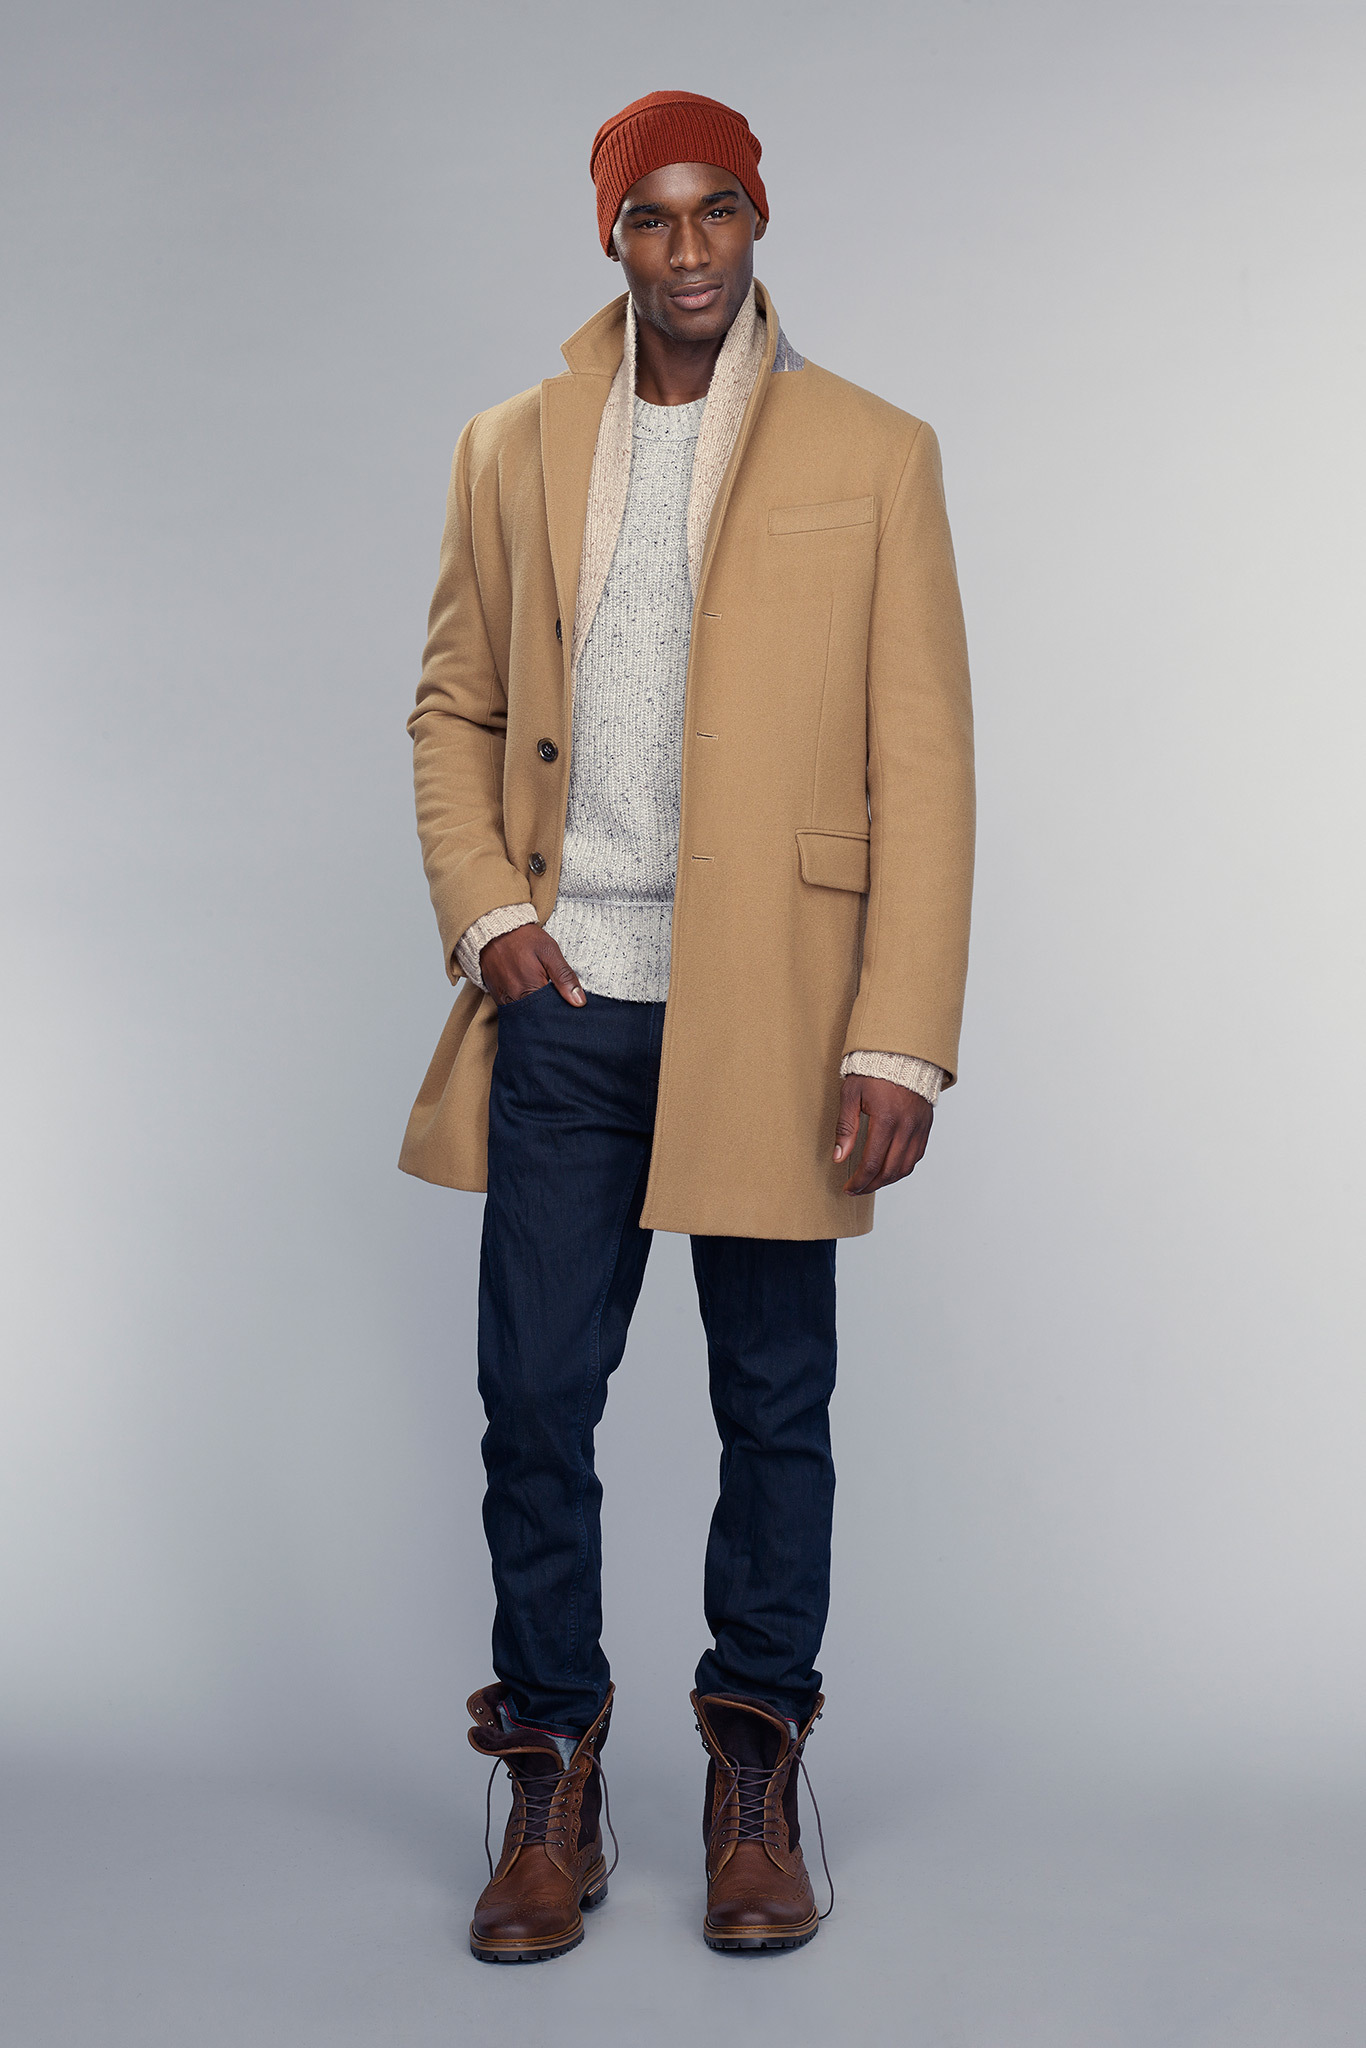 Men's Camel Overcoat, Beige Shawl Cardigan, White Crew-neck ...